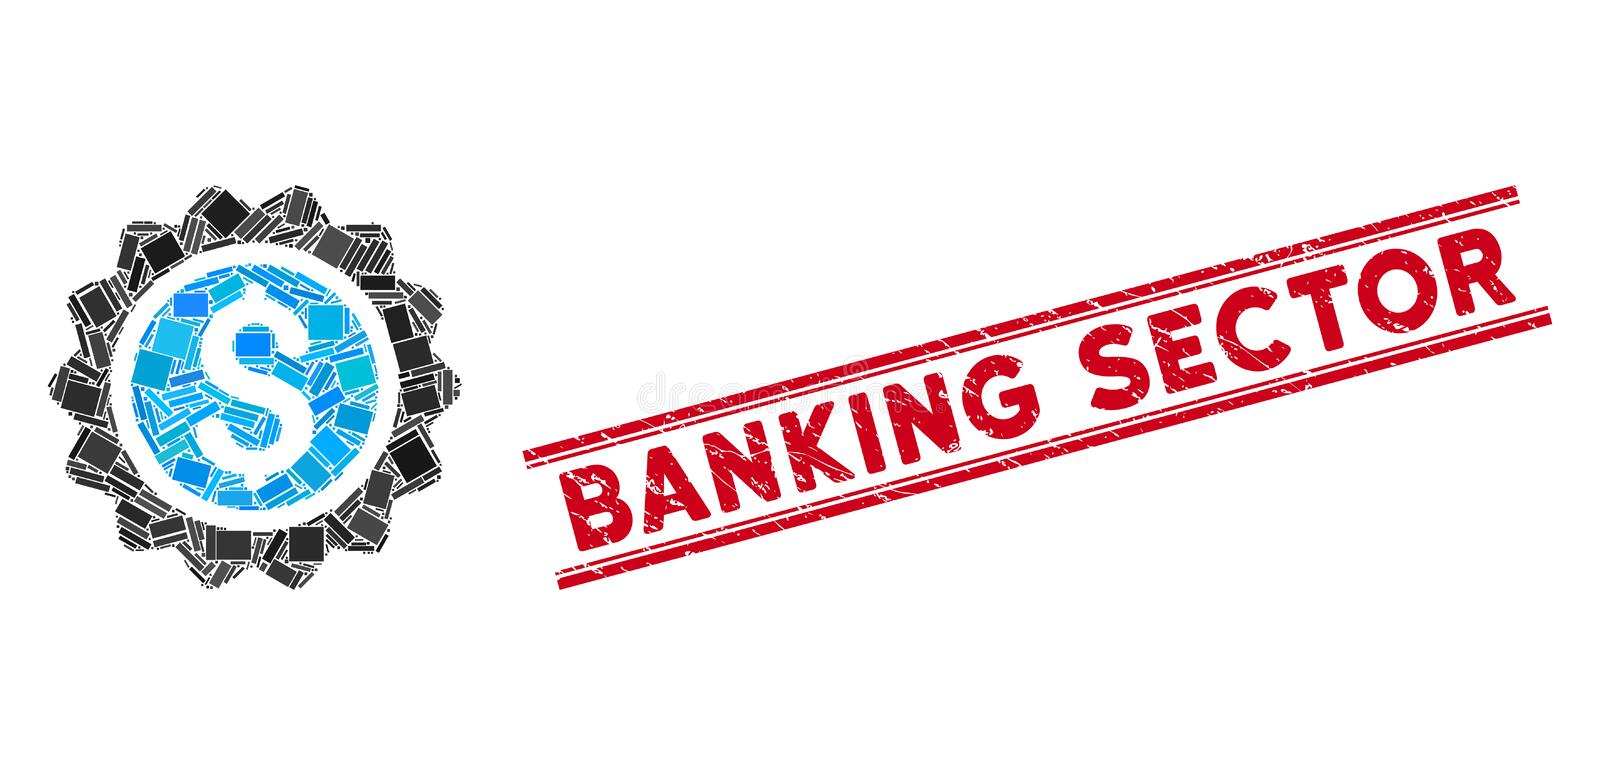 Banking Stamp Mosaic and Distress Banking Sector Watermark with Lines. Mosaic banking stamp icon and red Banking Sector seal stamp between double parallel lines royalty free illustration